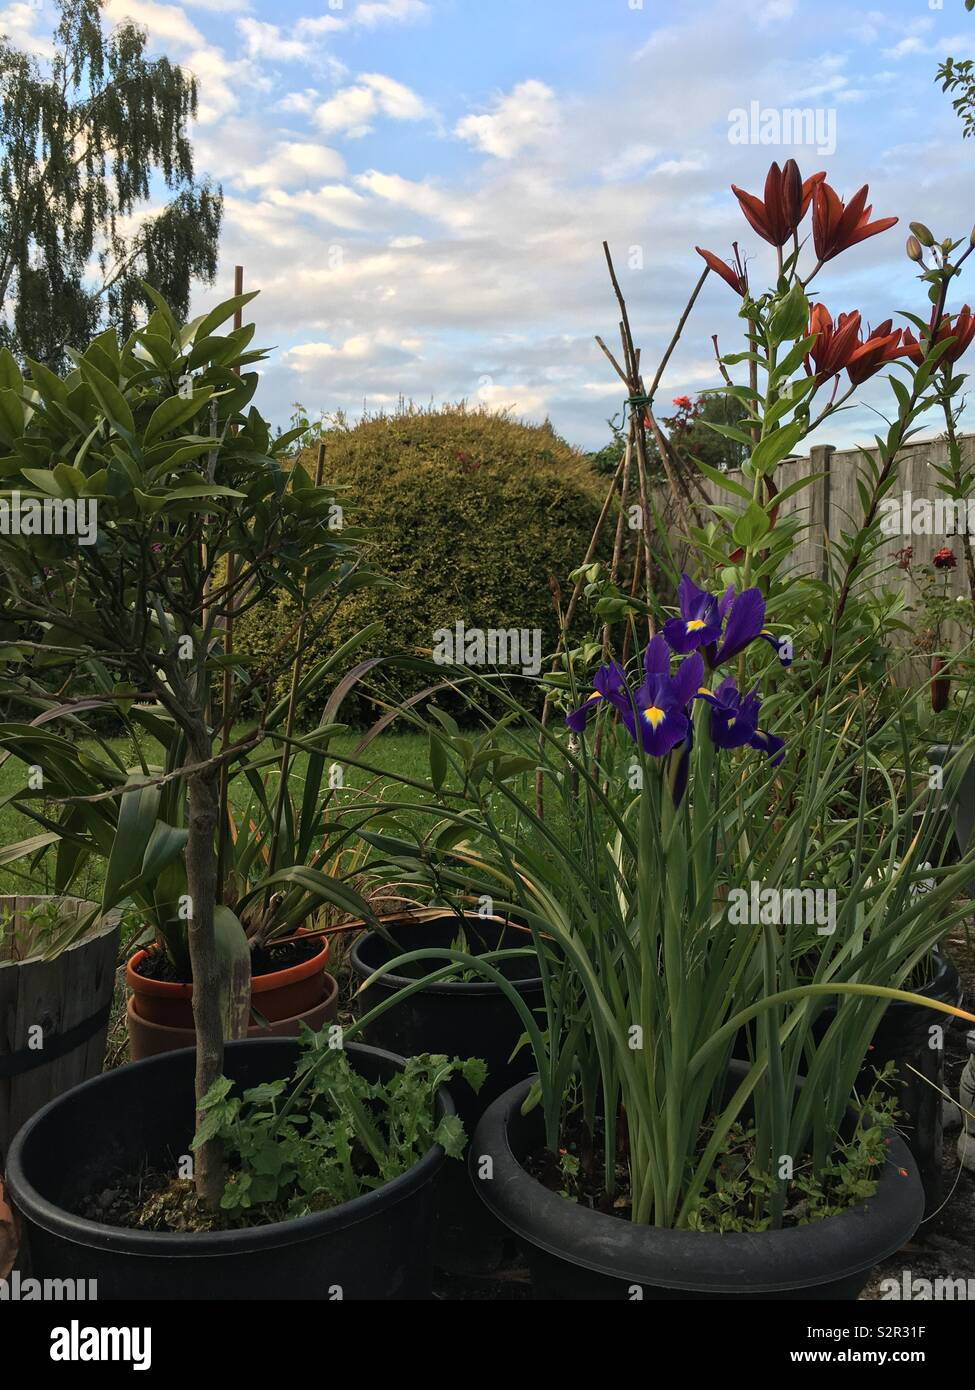 Pot plants, iris and lily, against and evening skyscape - Stock Image